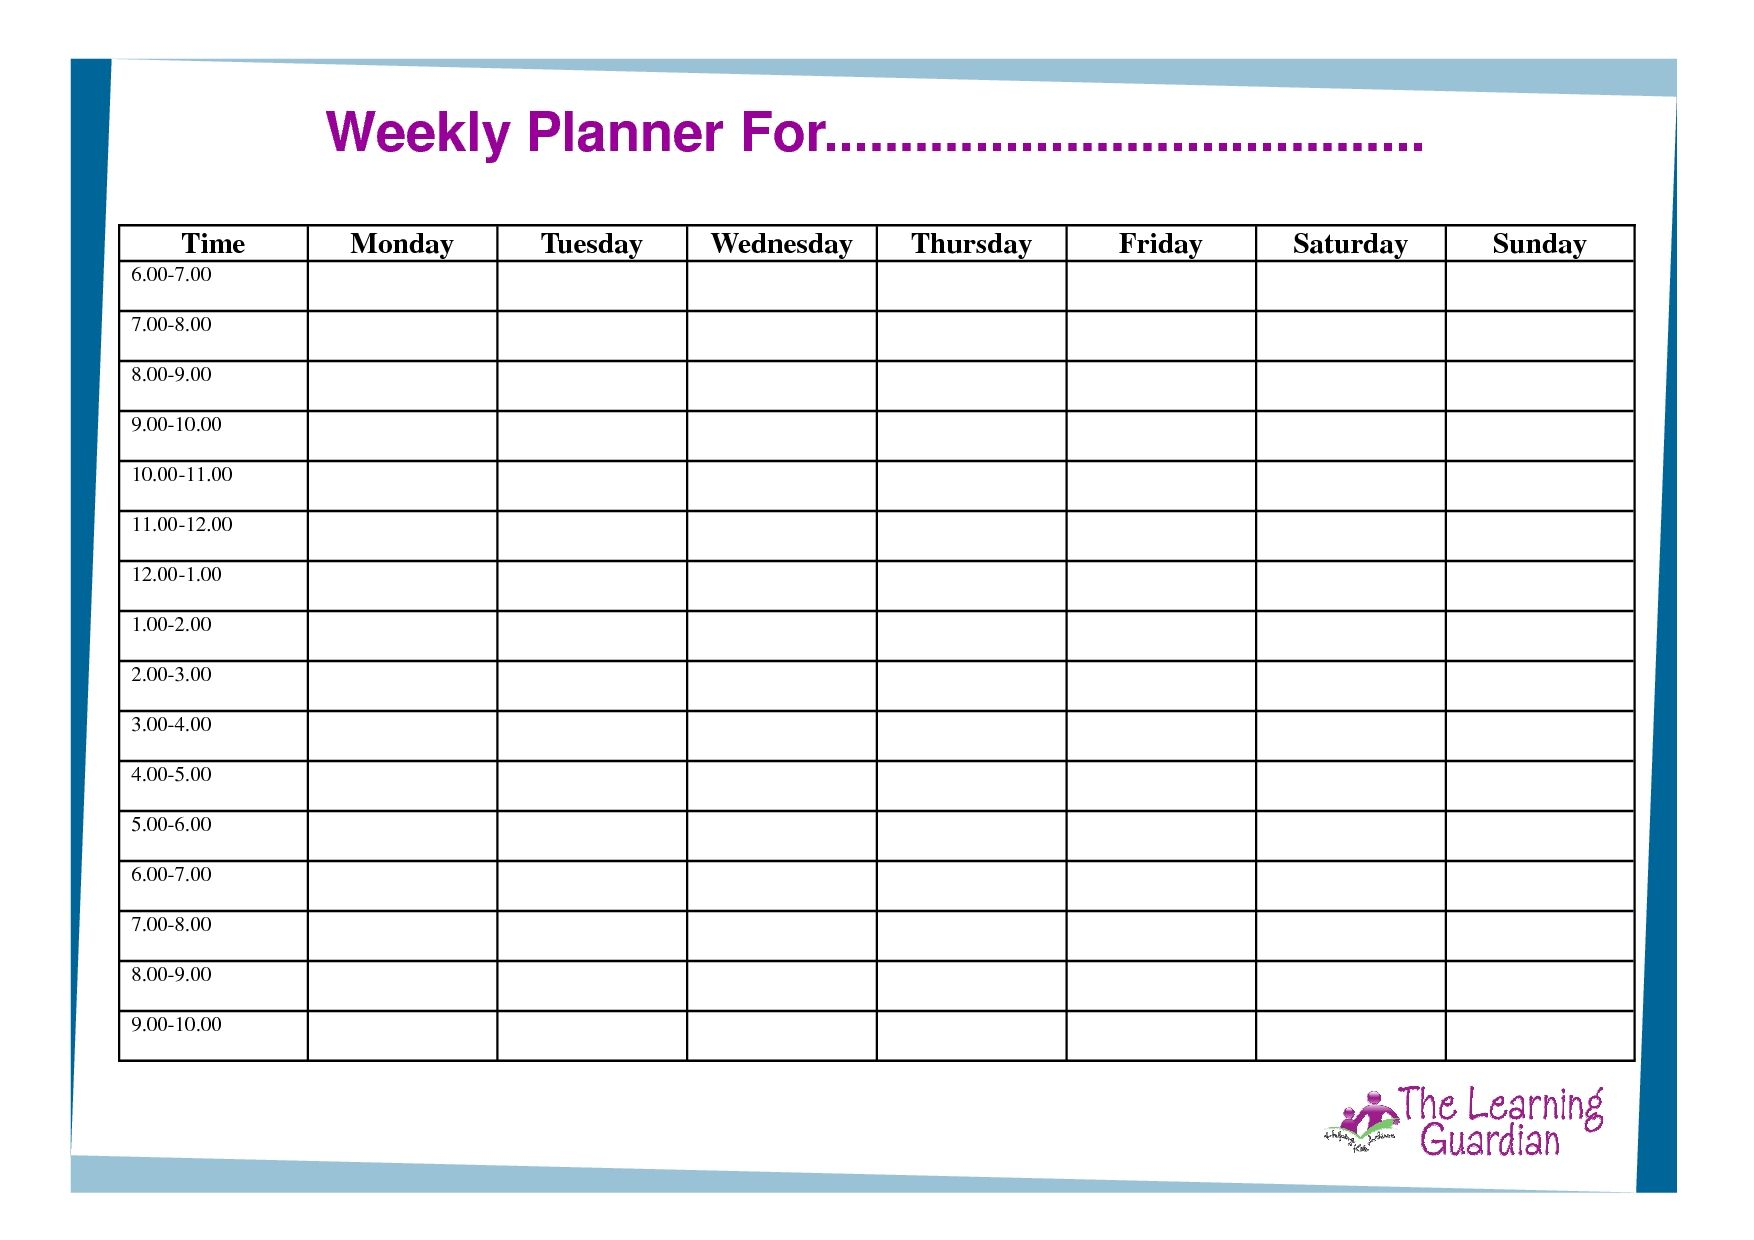 Free Printable Weekly Calendar Templates Planner For Time regarding Free Online Weekly Calendar